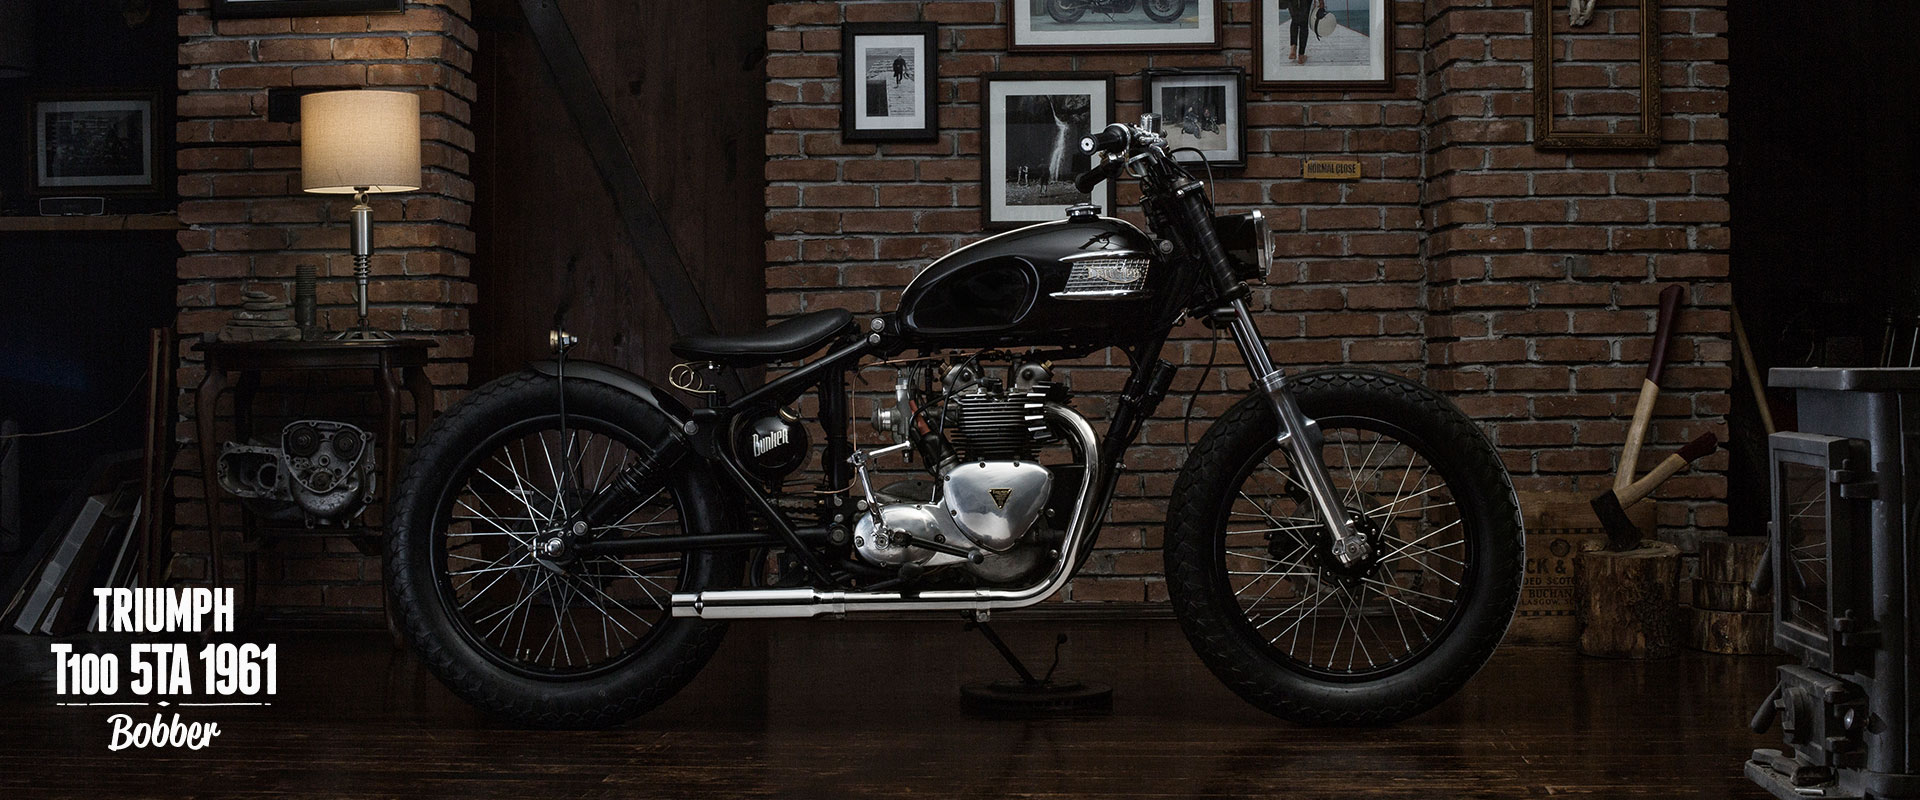 Triumph 1961 5ta t100 bobber Bunker Customs